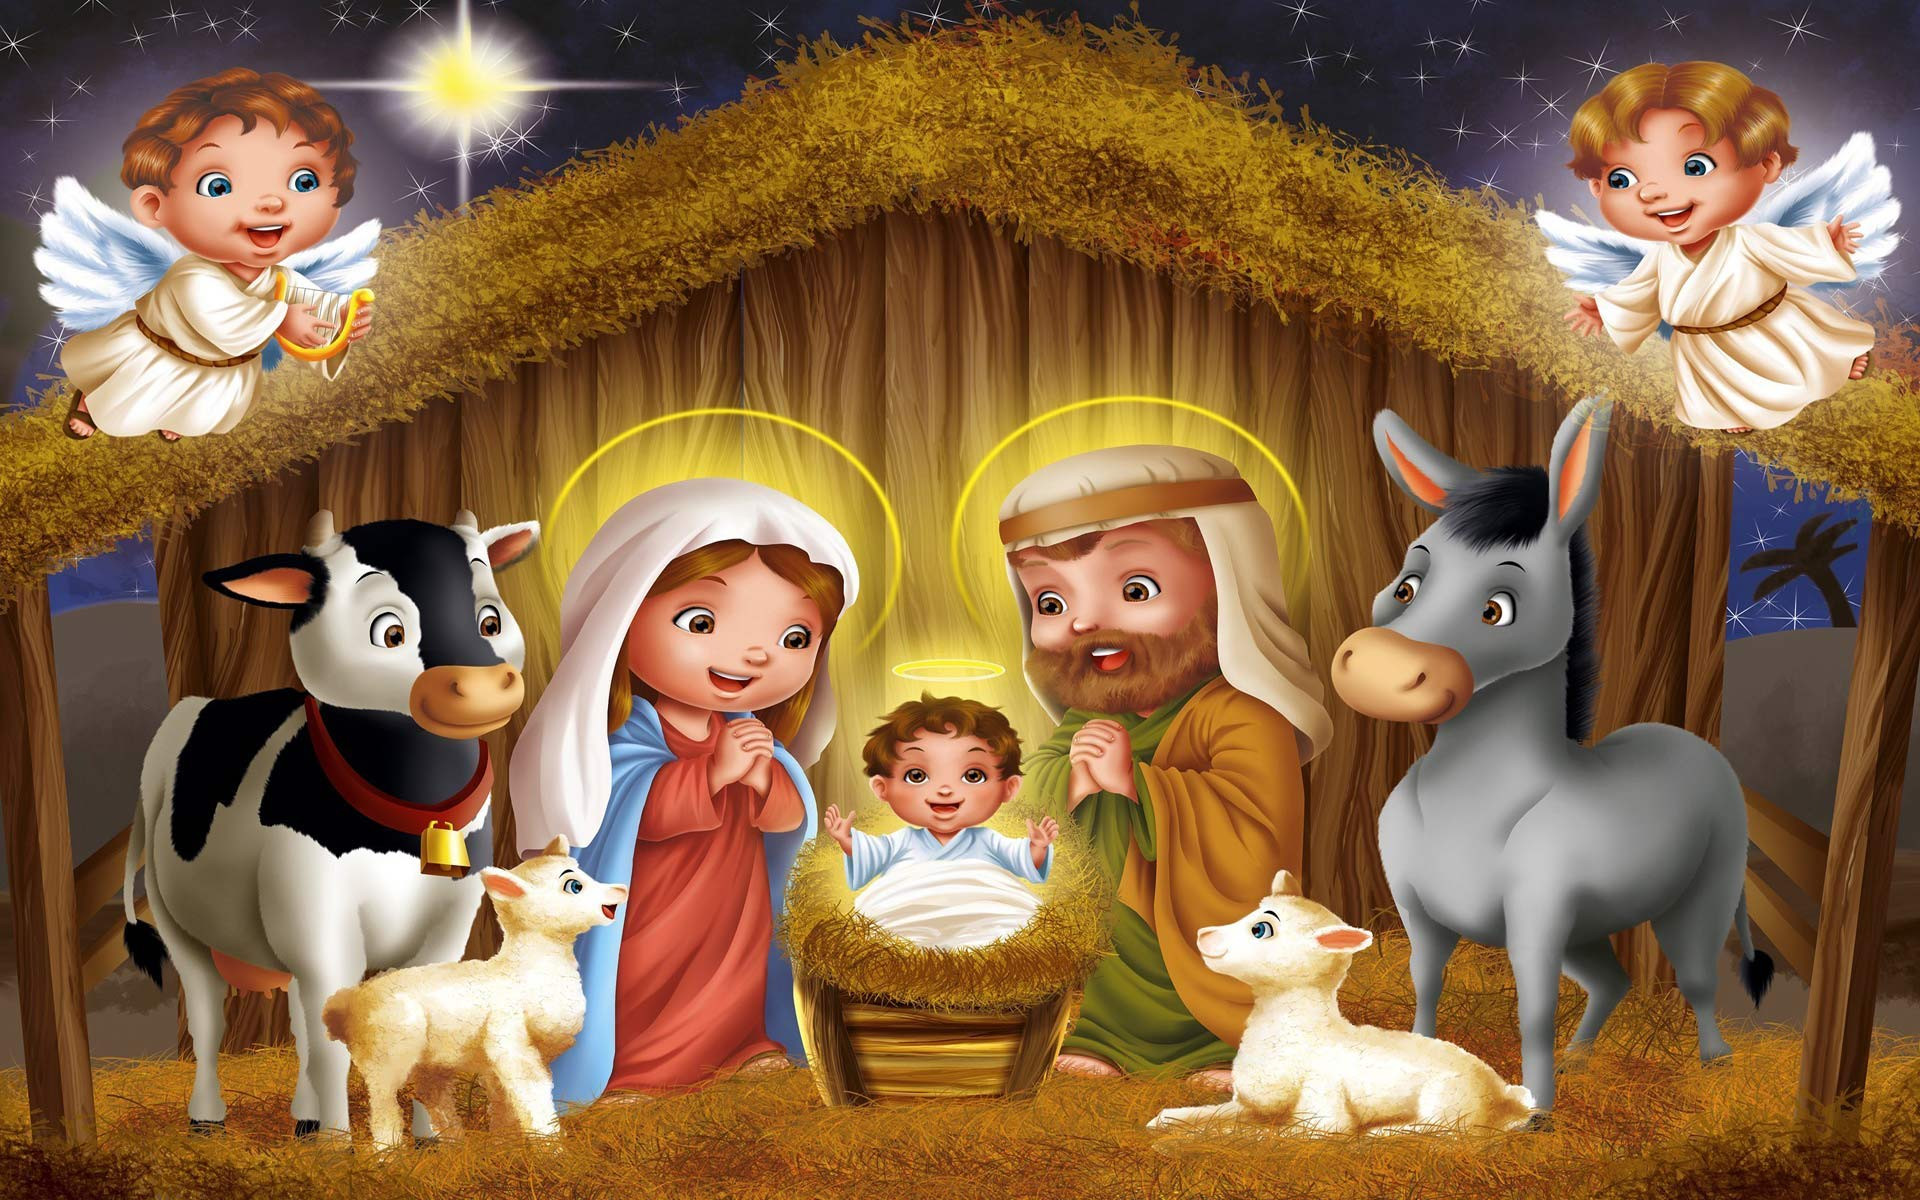 28 Oct How To Easily Make A Christmas Crib